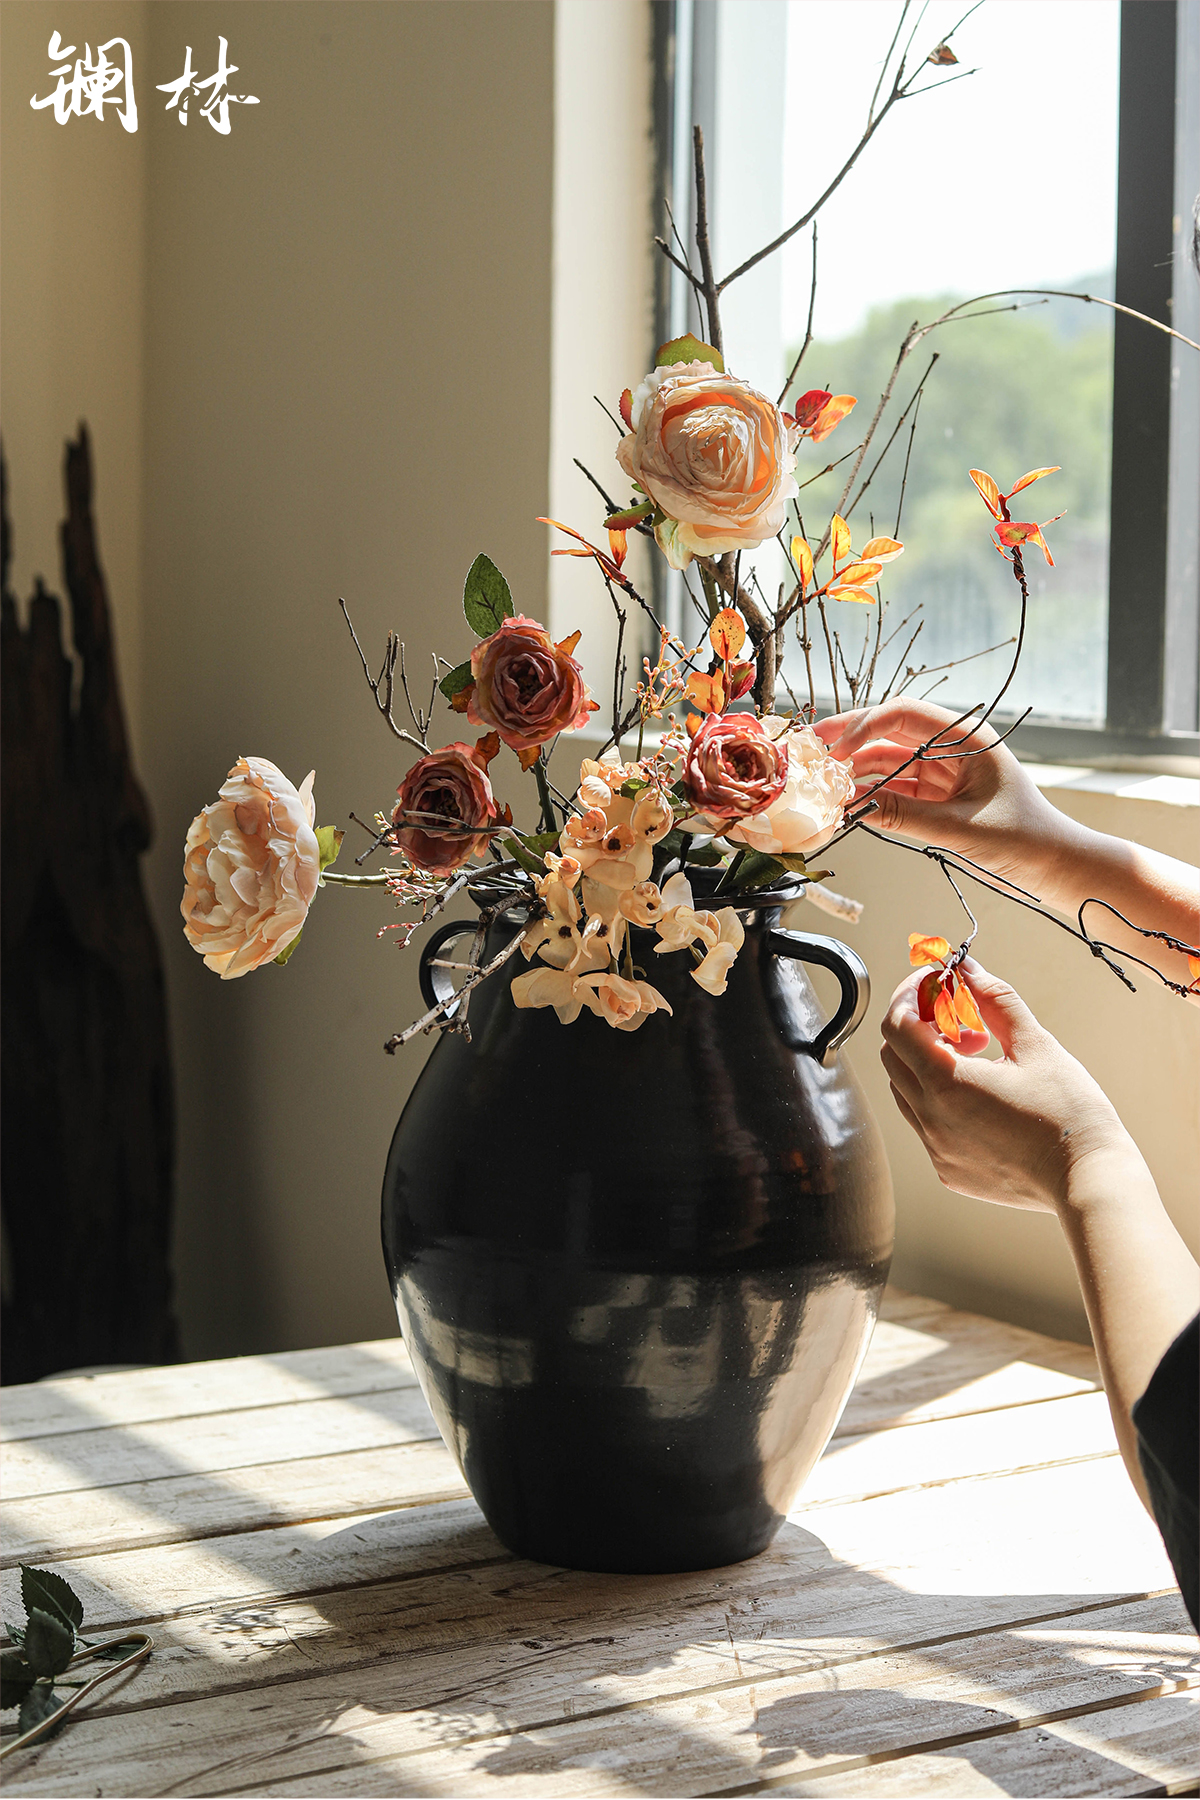 The Vases, ceramic art design style restoring ancient ways pottery flower arranging dried flower pot flower bed indoor decoration of a home stay facility furnishing articles